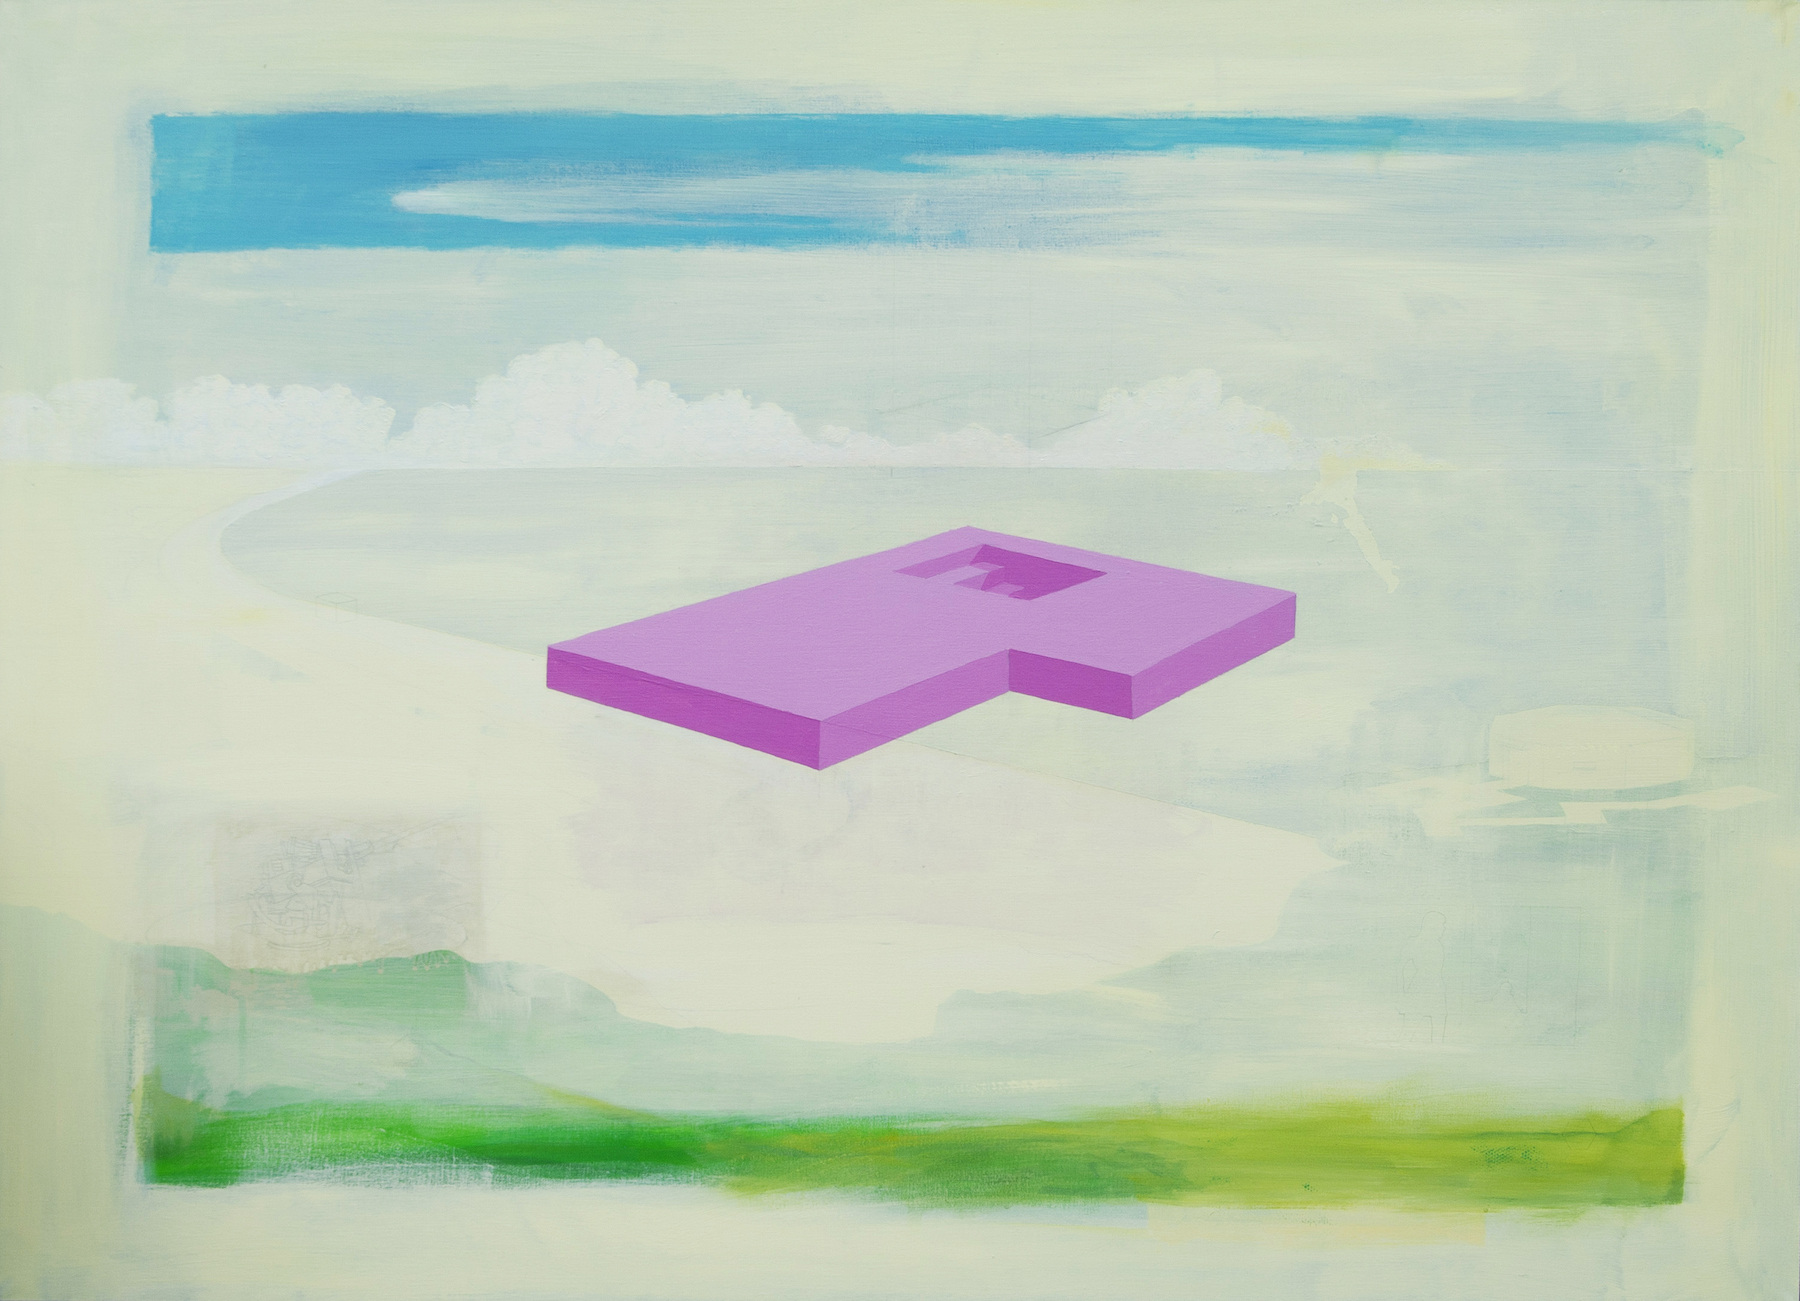 Gary Scholes Component Jackson's Open Painting Prize Commeneded Entry of the Week